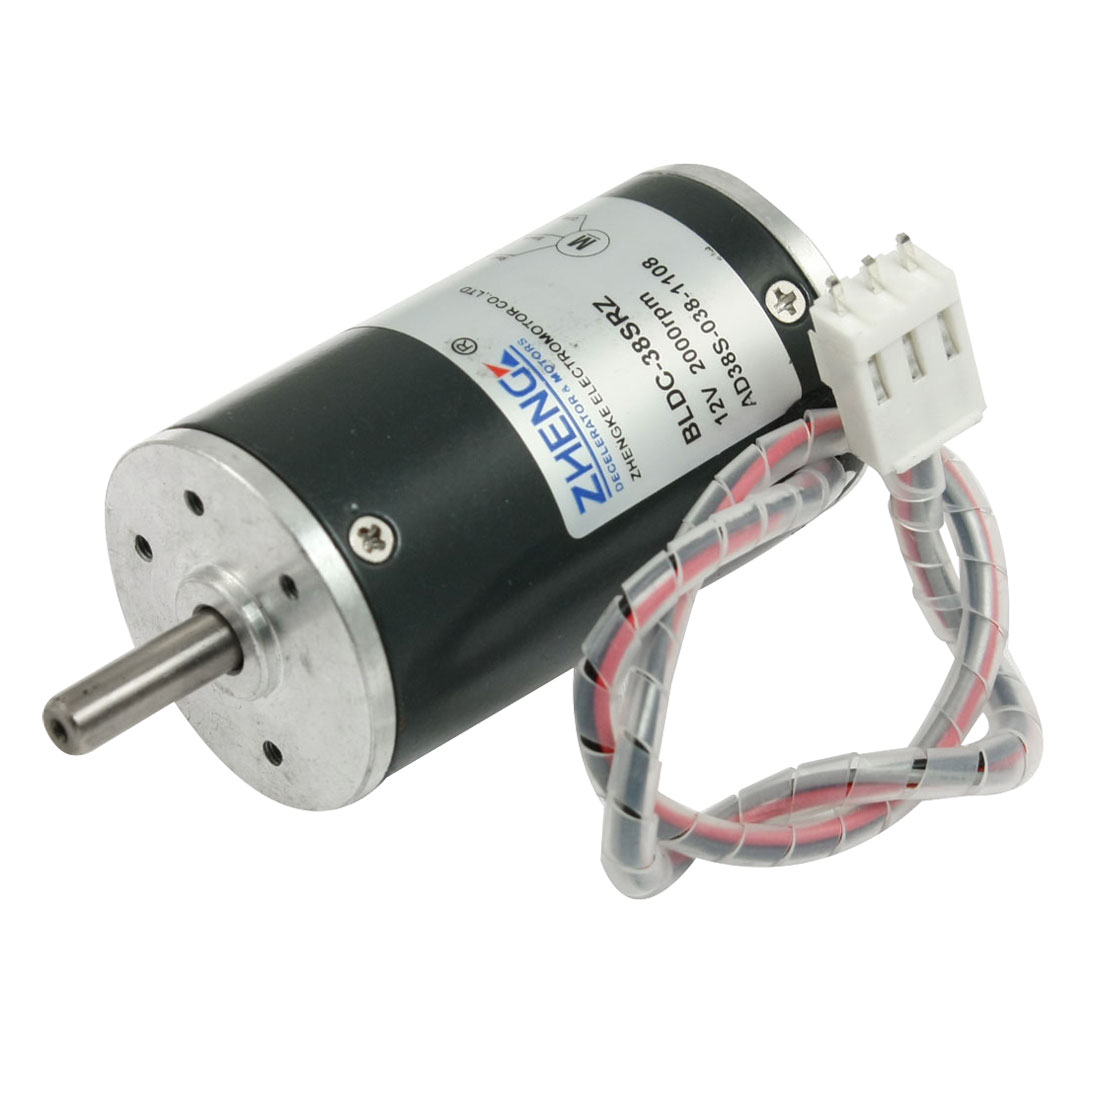 Low-Noise-2000RPM-100G-cm-Torque-Brushless-Motor-DC-12V